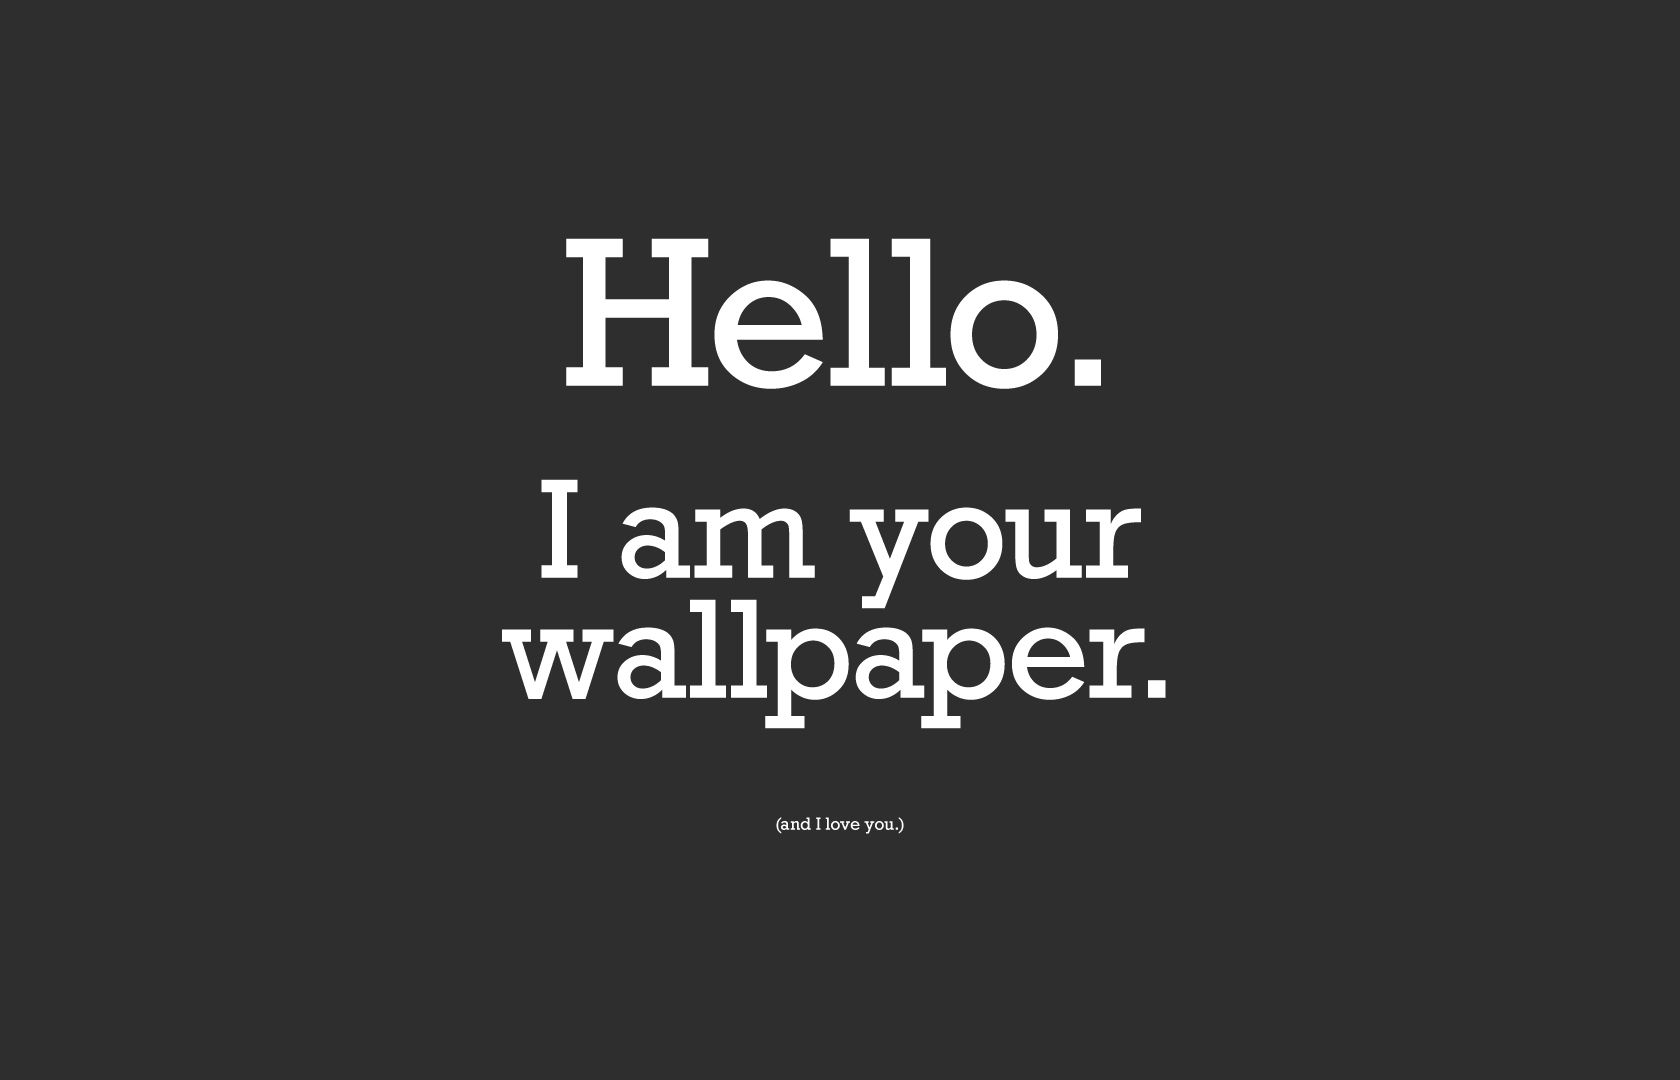 wallpapers for funny picture - wallpaper cave | download wallpaper